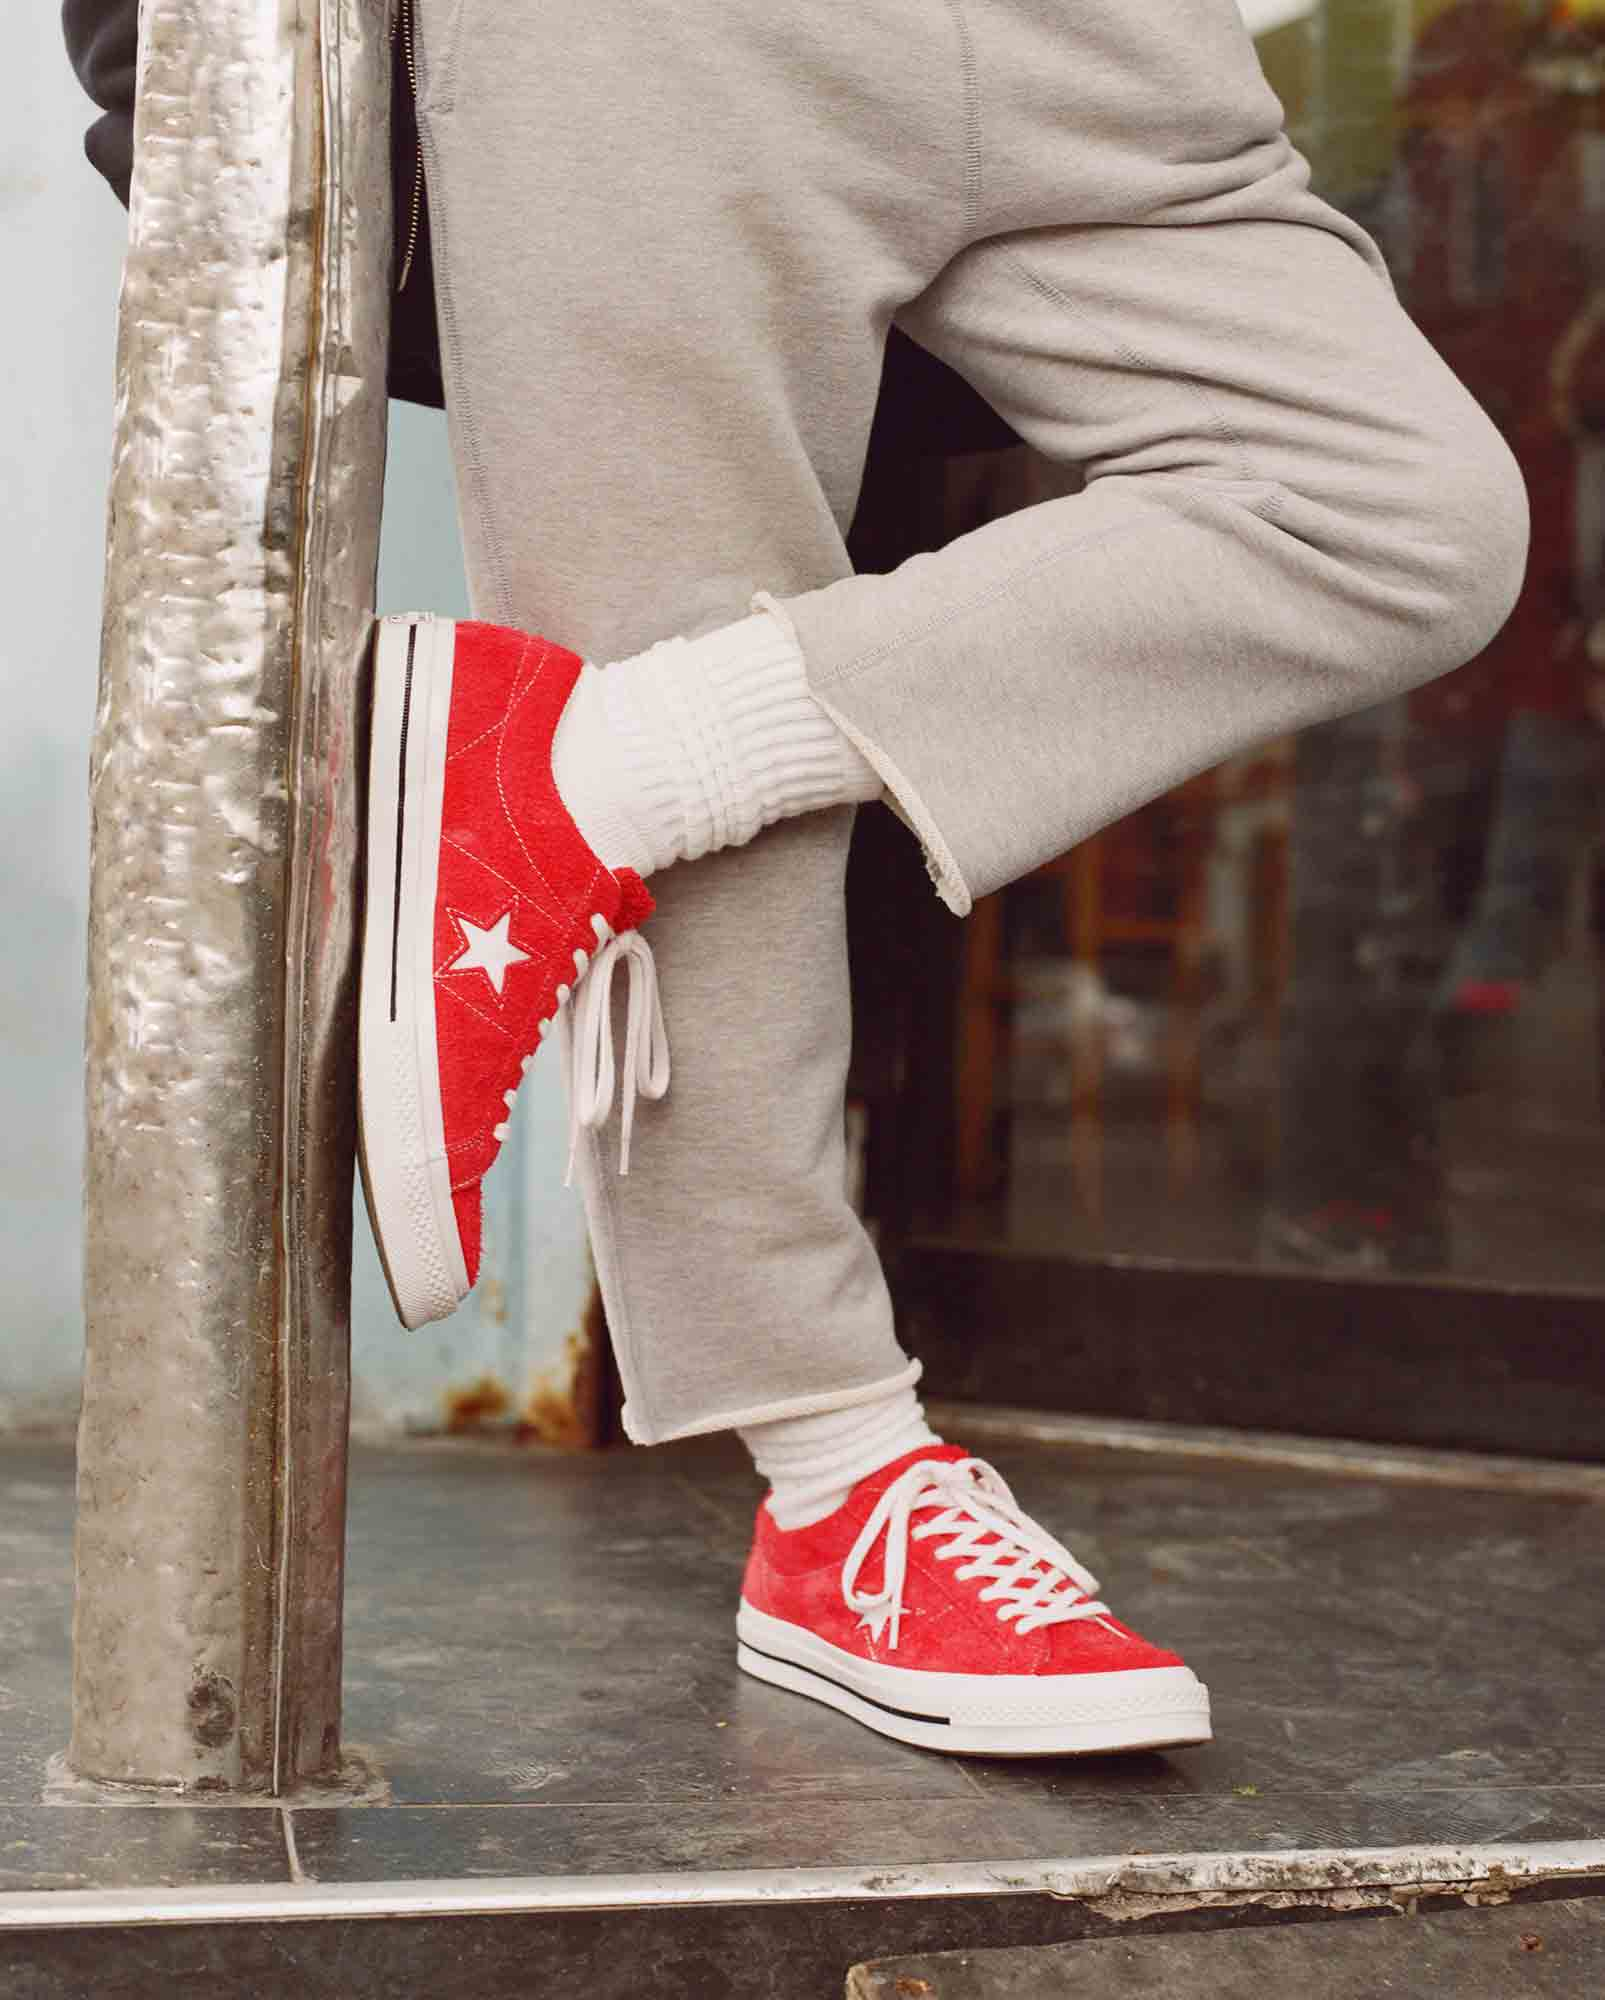 faba5f0059b43e This summer autumn is a great one for Converse lovers all around the world  as we get reintroduced to the iconic One Star silhouette in a wave of drops  that ...